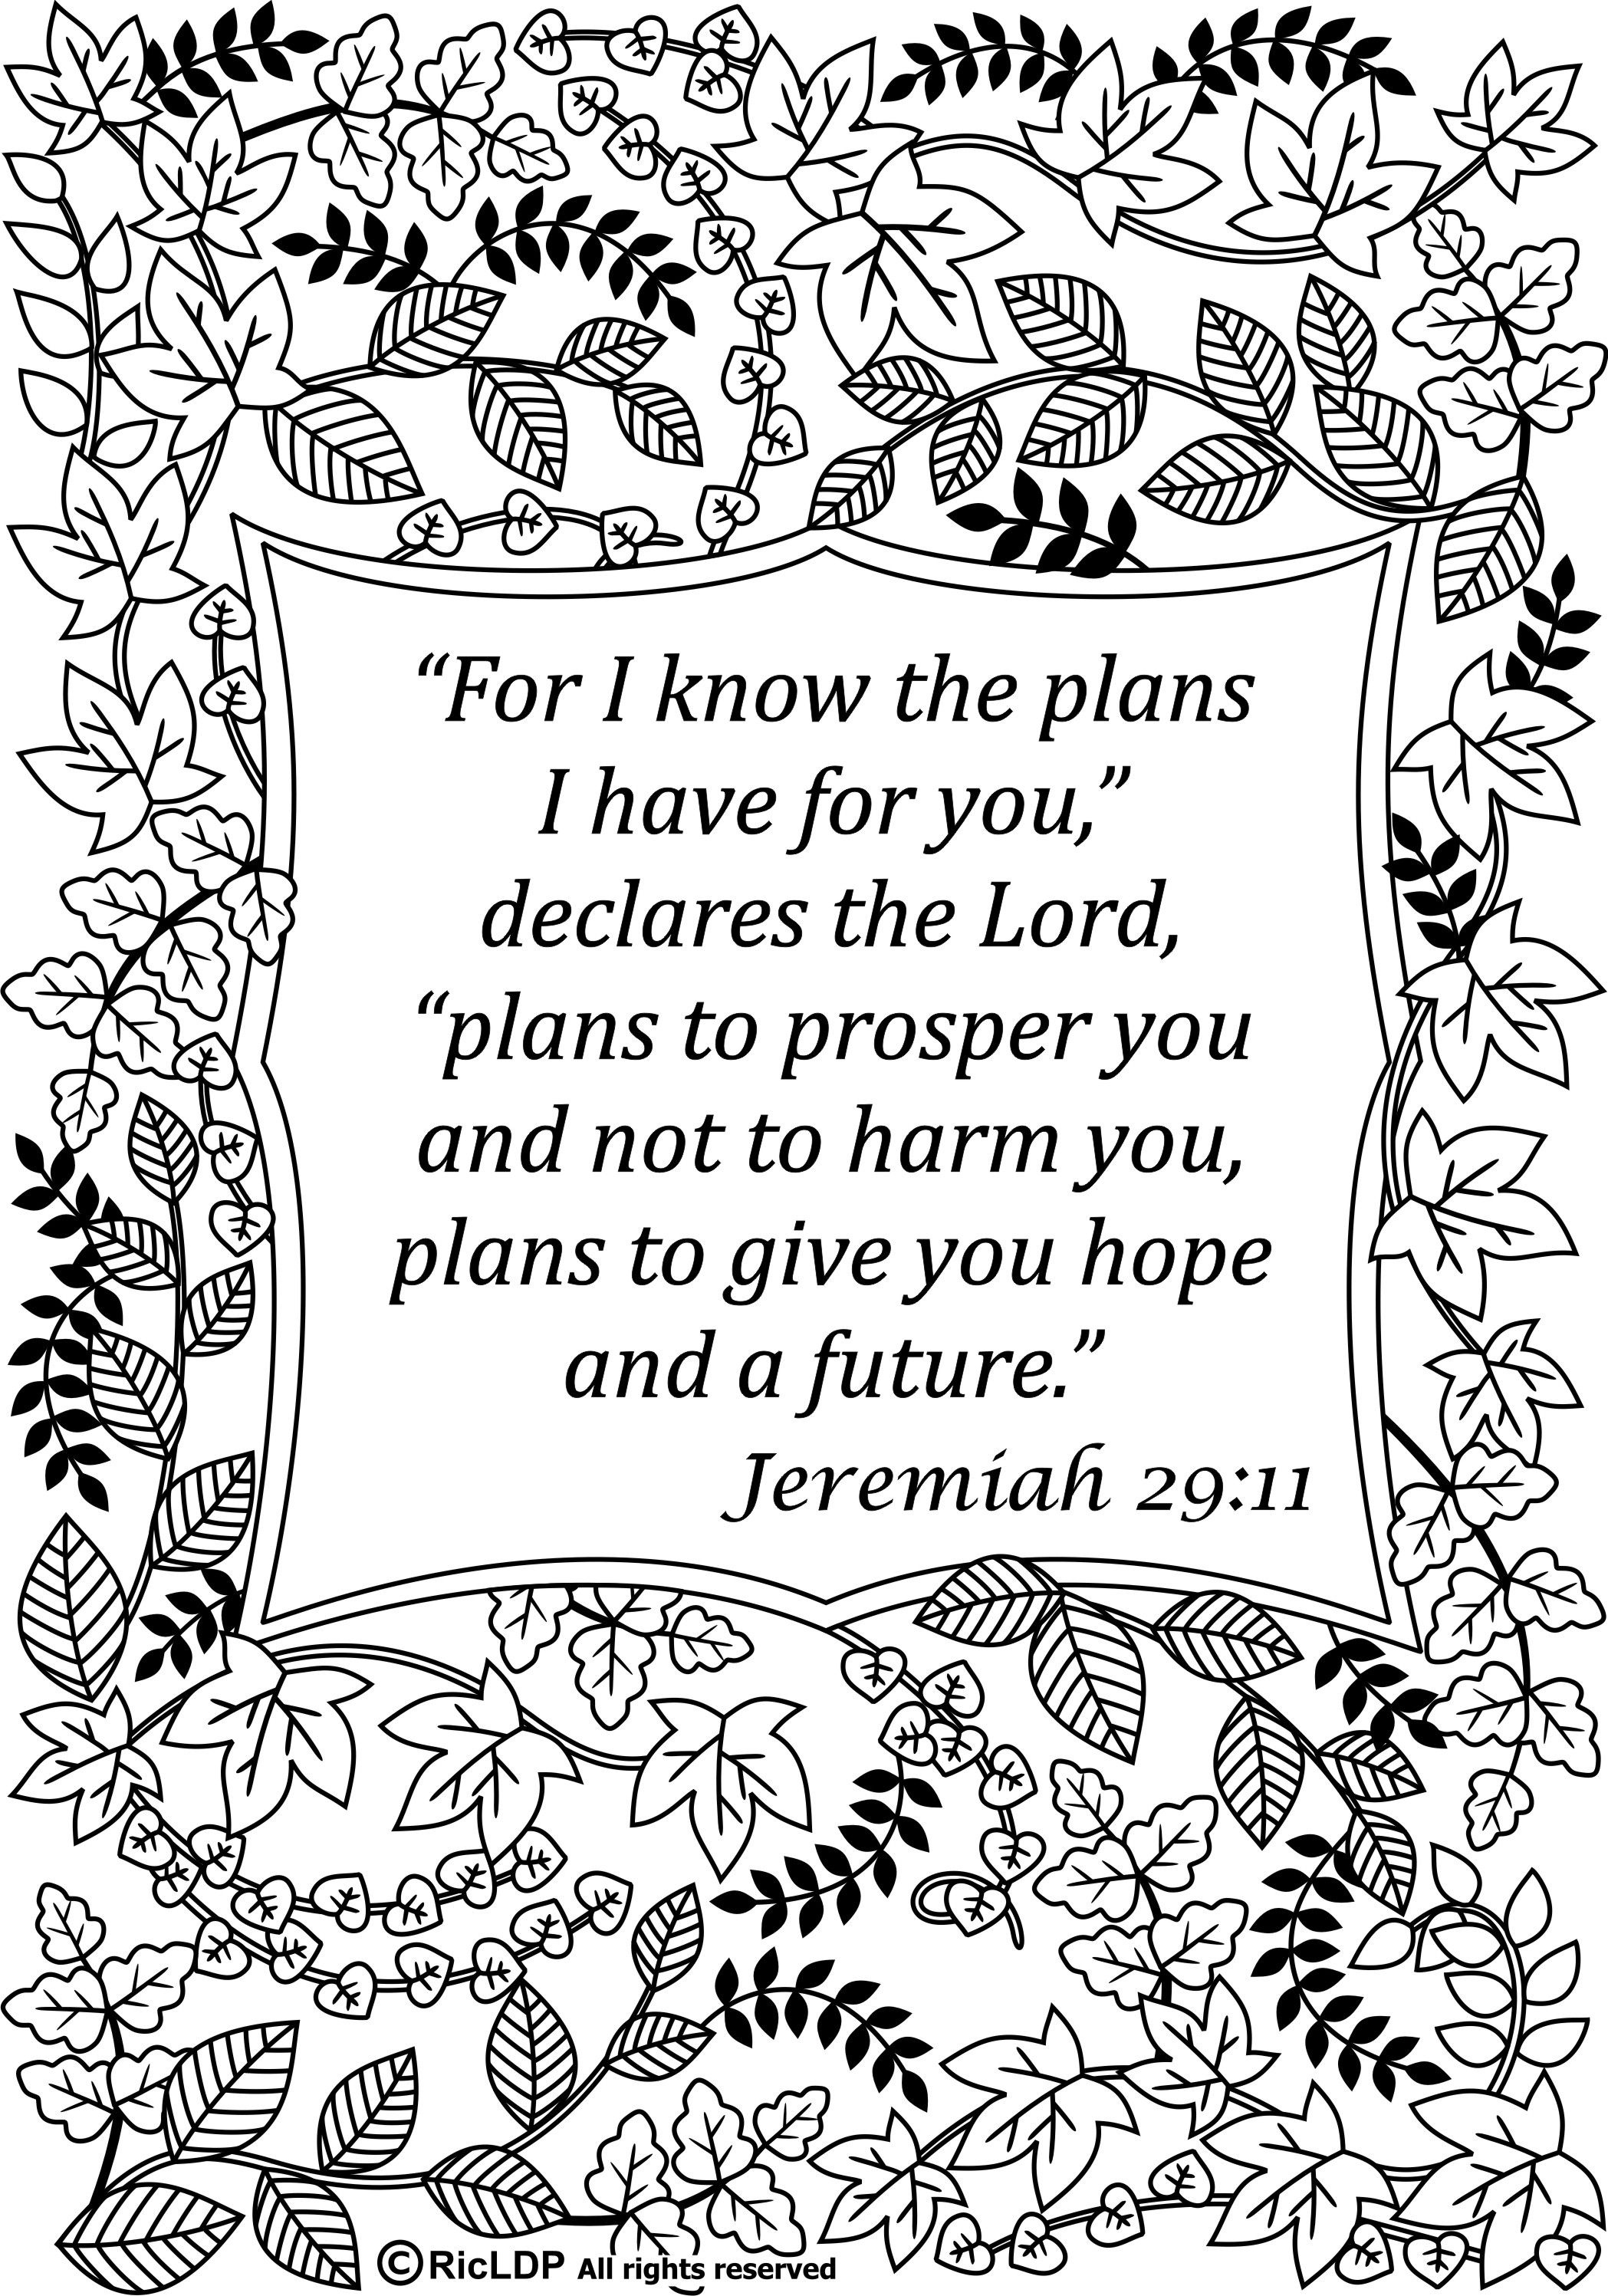 15 Bible Verses Coloring Pages | Coloring Pages With Bible Verses - Free Printable Bible Verses Adults